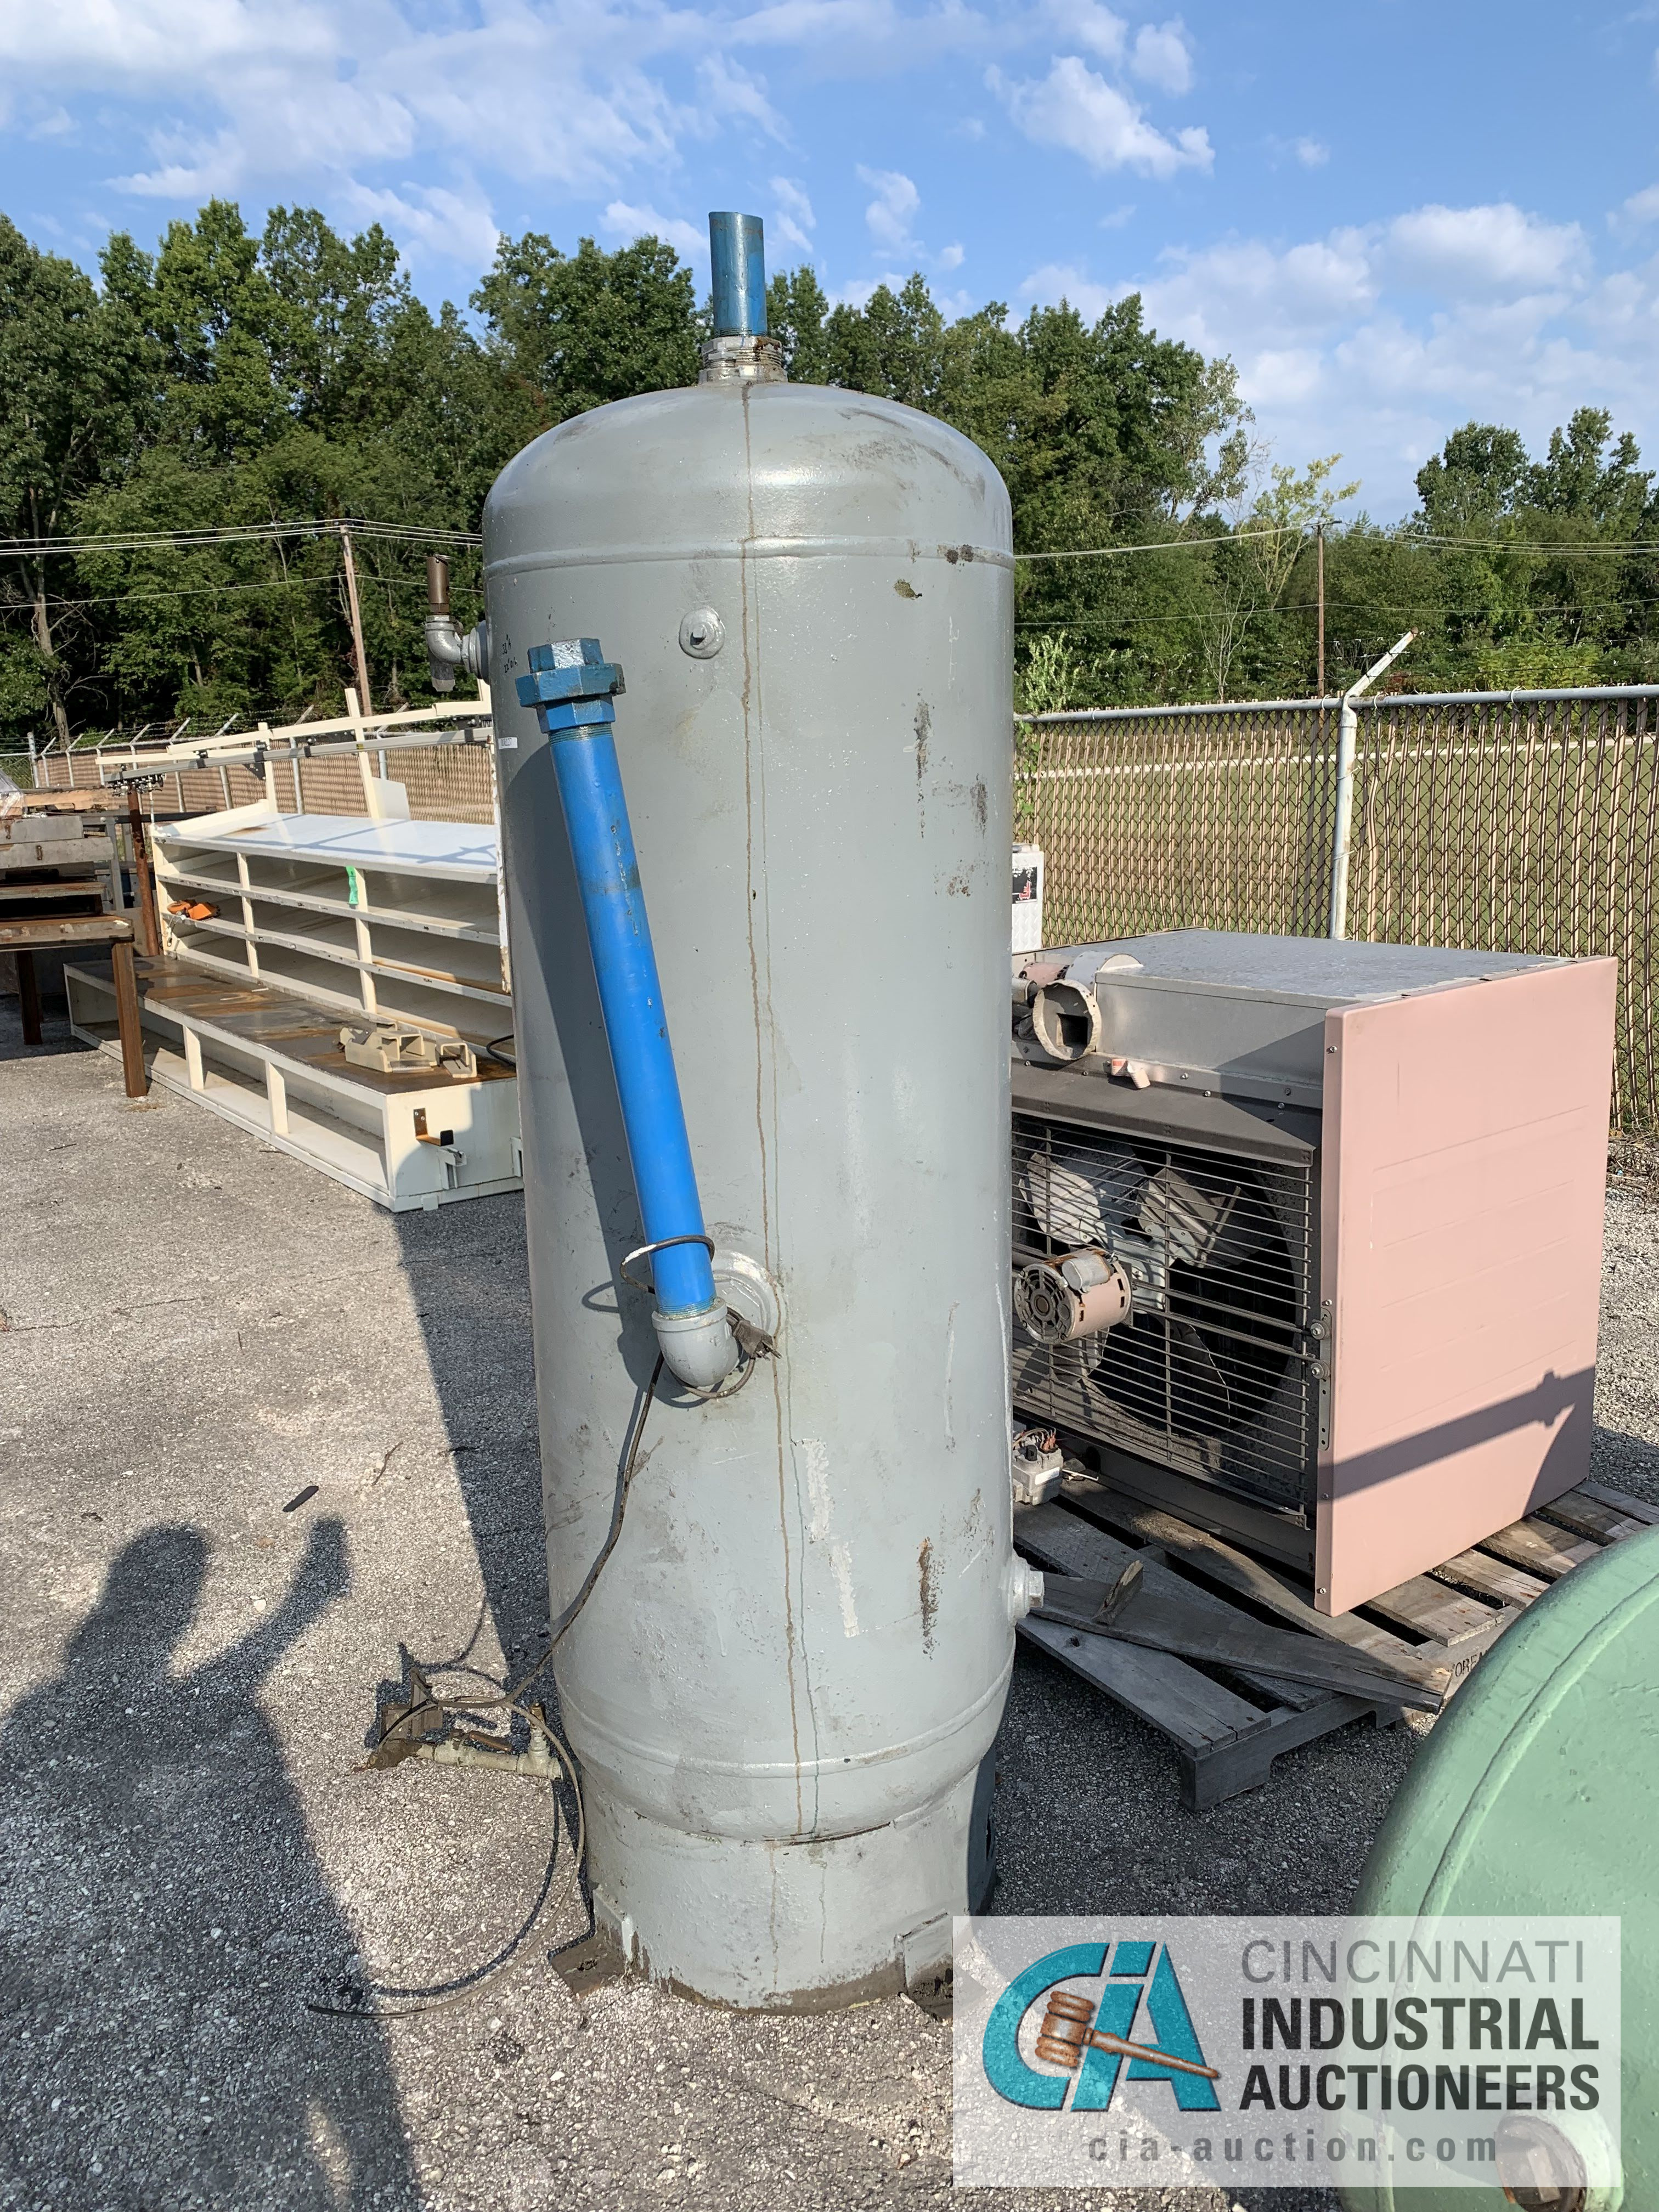 "53"" X 22"" WESTERN STEEL AIR TANK - $20.00 Rigging Fee Due to Onsite Rigger - Located in Holland,"